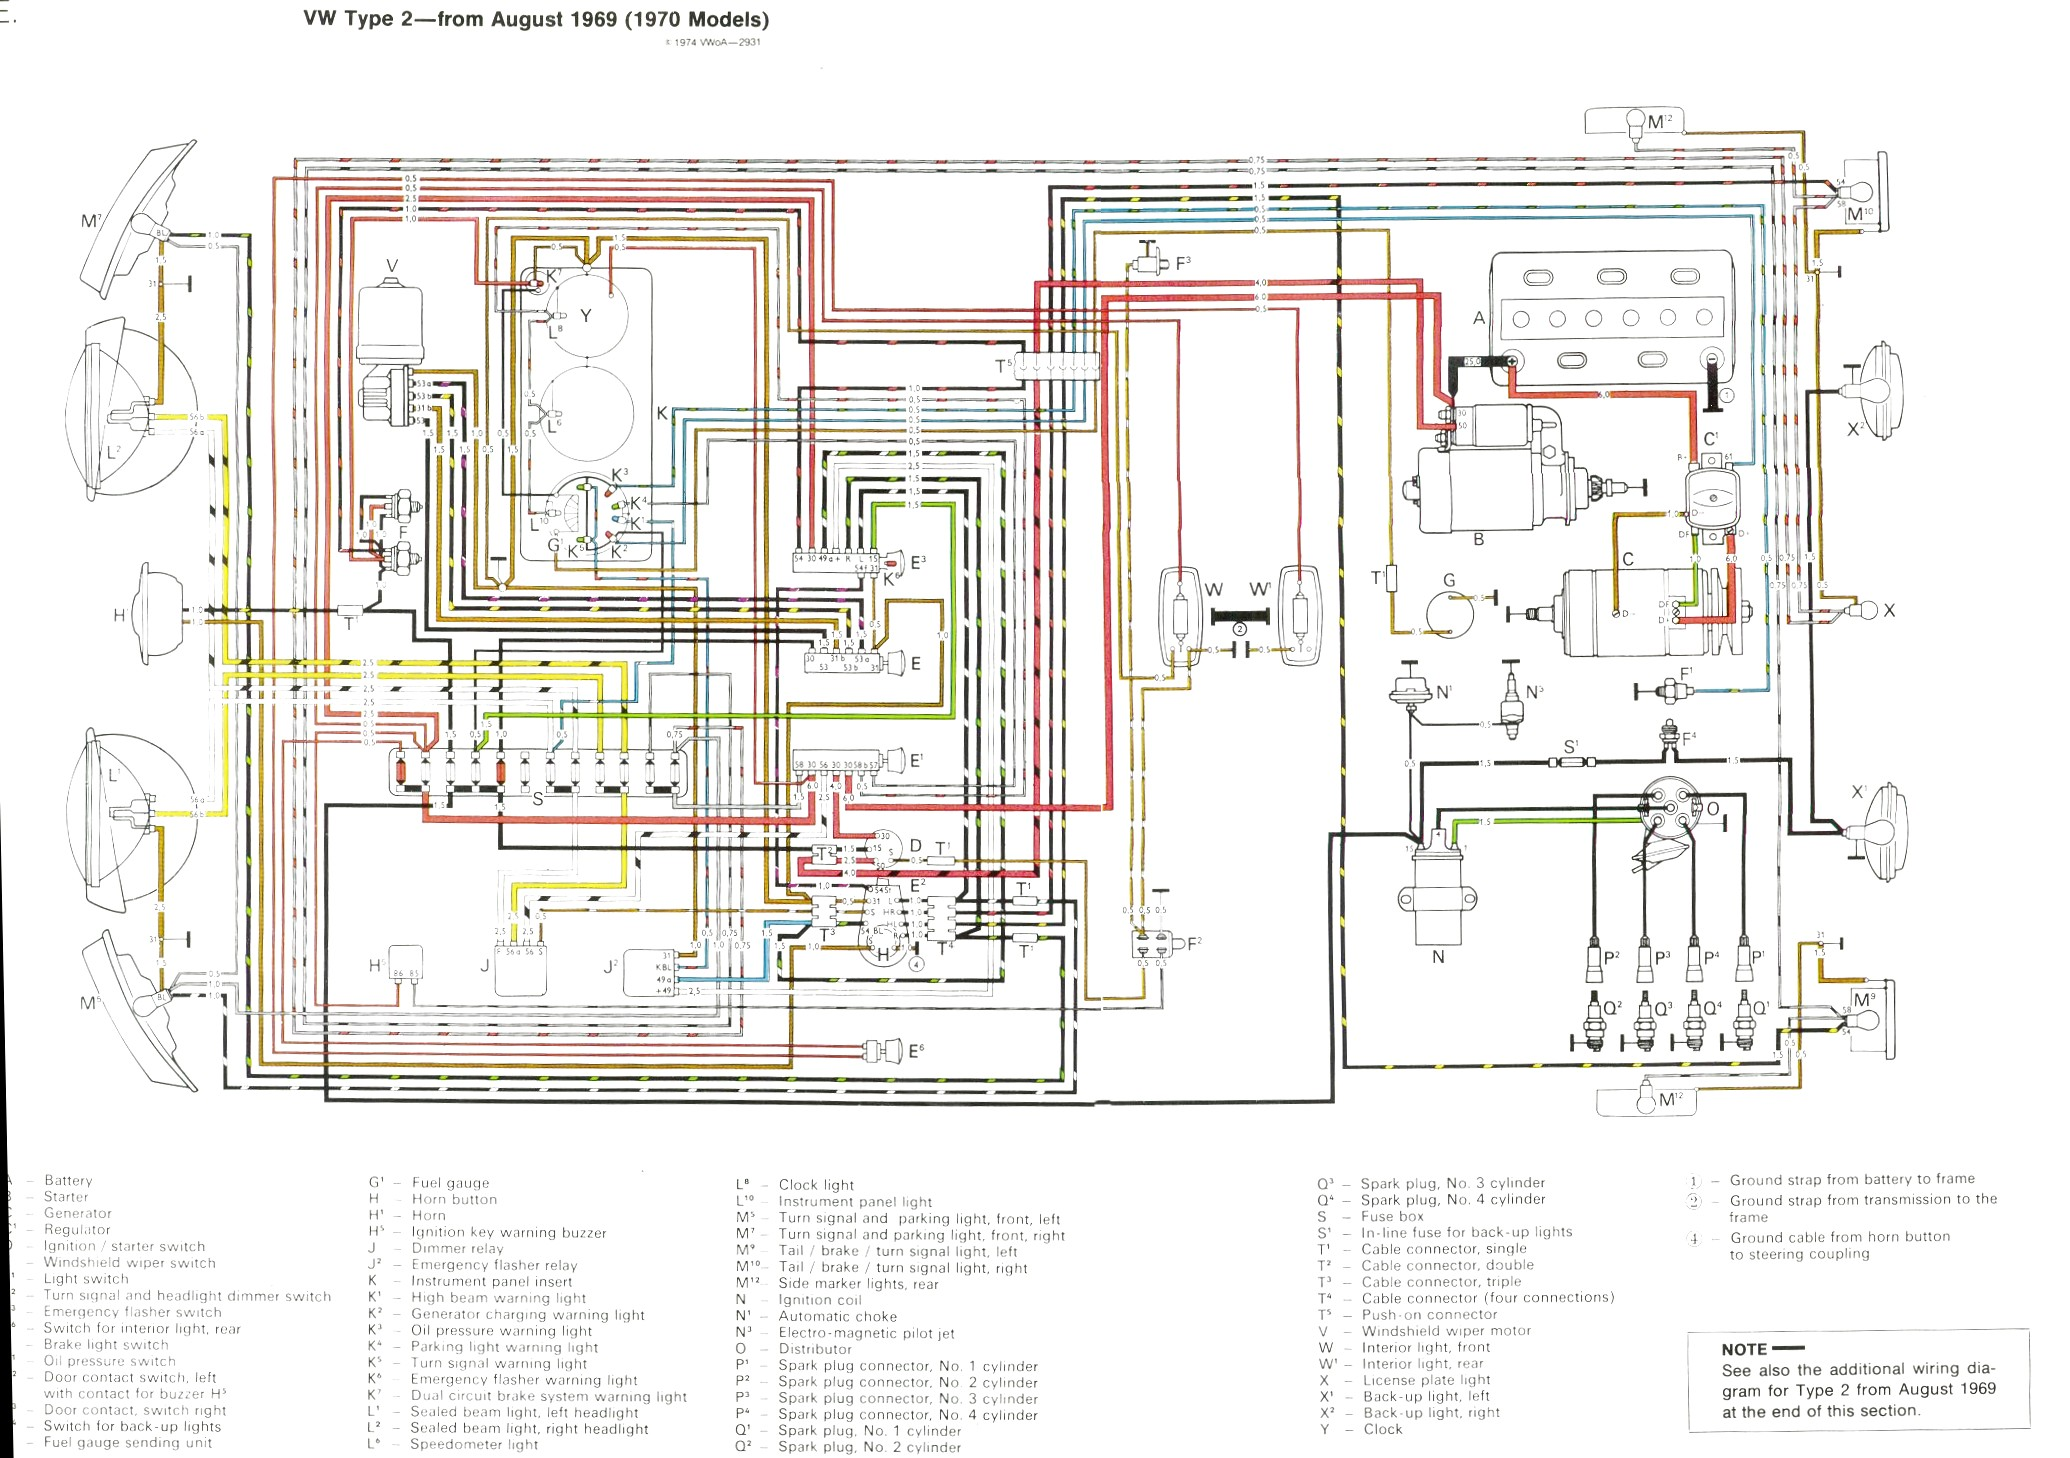 70 Series Fuse Box Diagram Wiring Library Headlight Dimmer Switch August 1969 1970 Models 411 937 505a Note The Fusebox